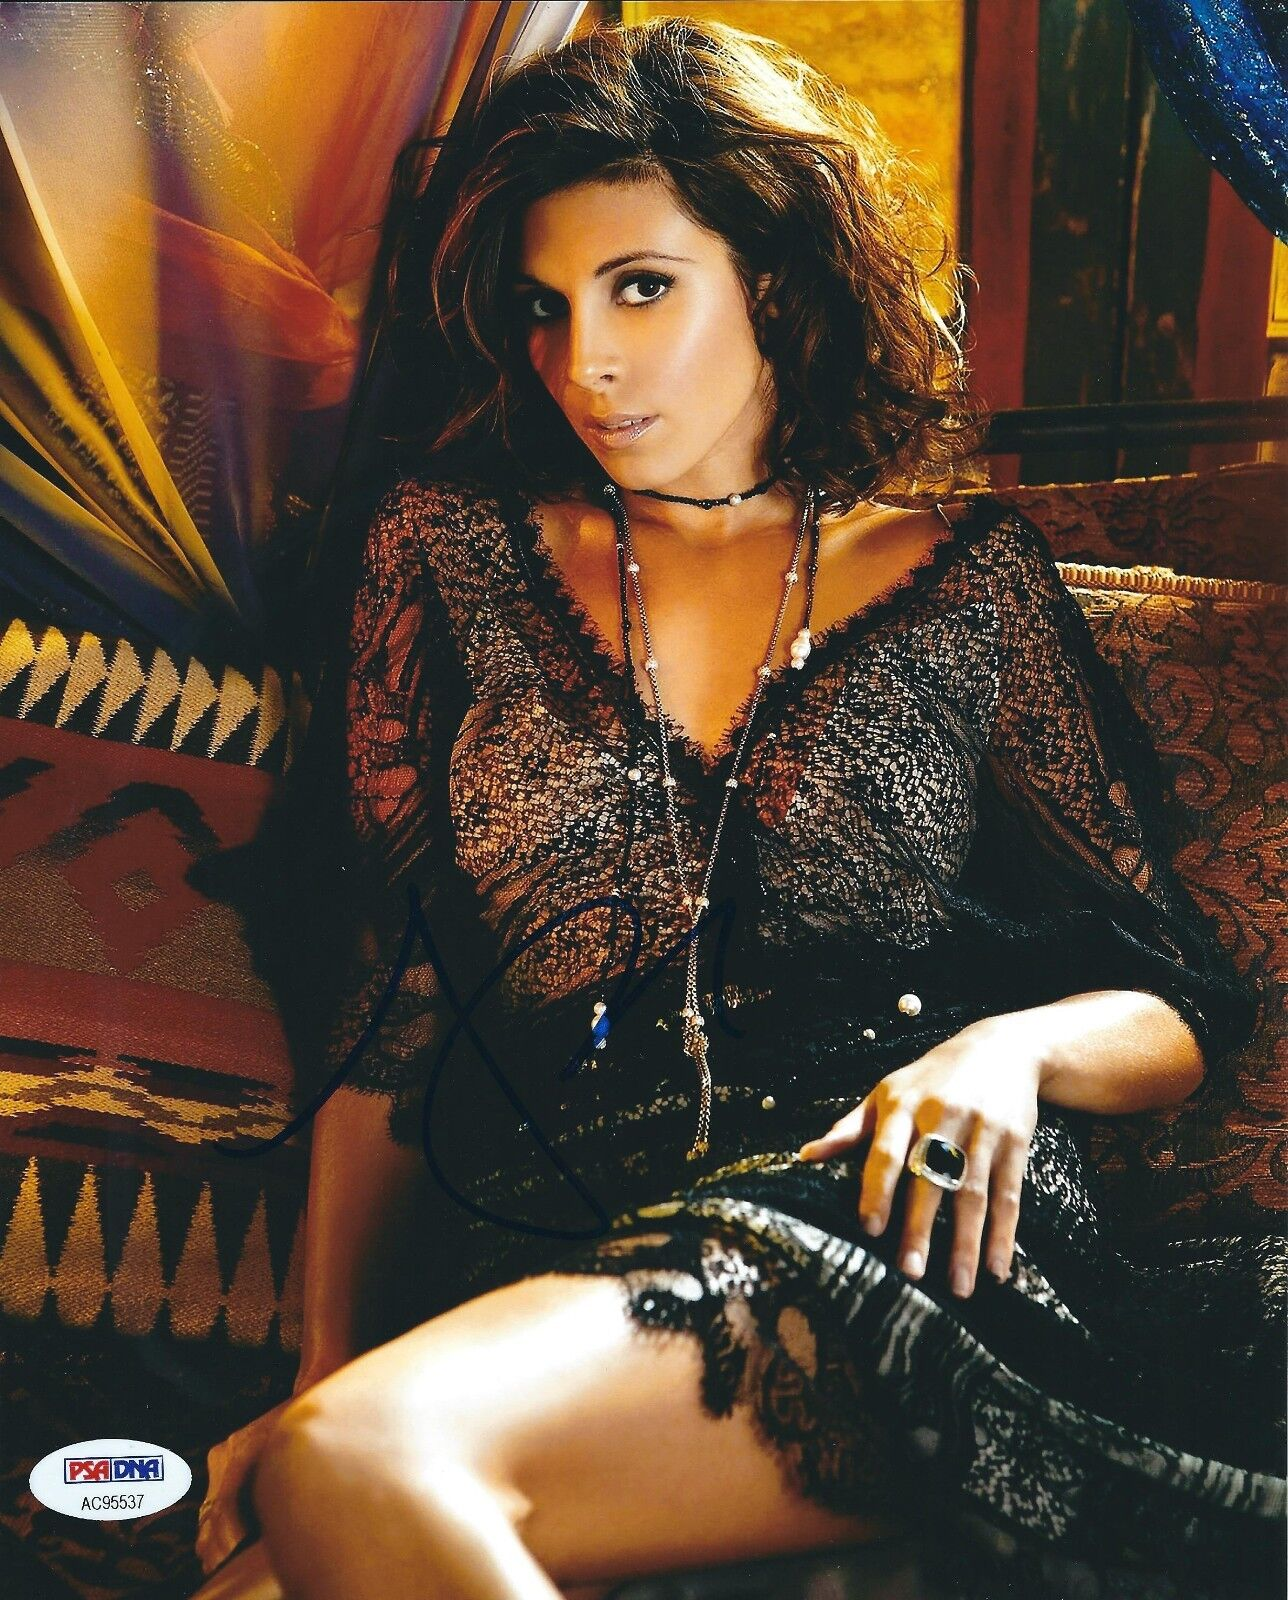 Jamie-Lynn Sigler Signed 8x10 Photo *The Sopranos *Entourage *Model PSA AC95537